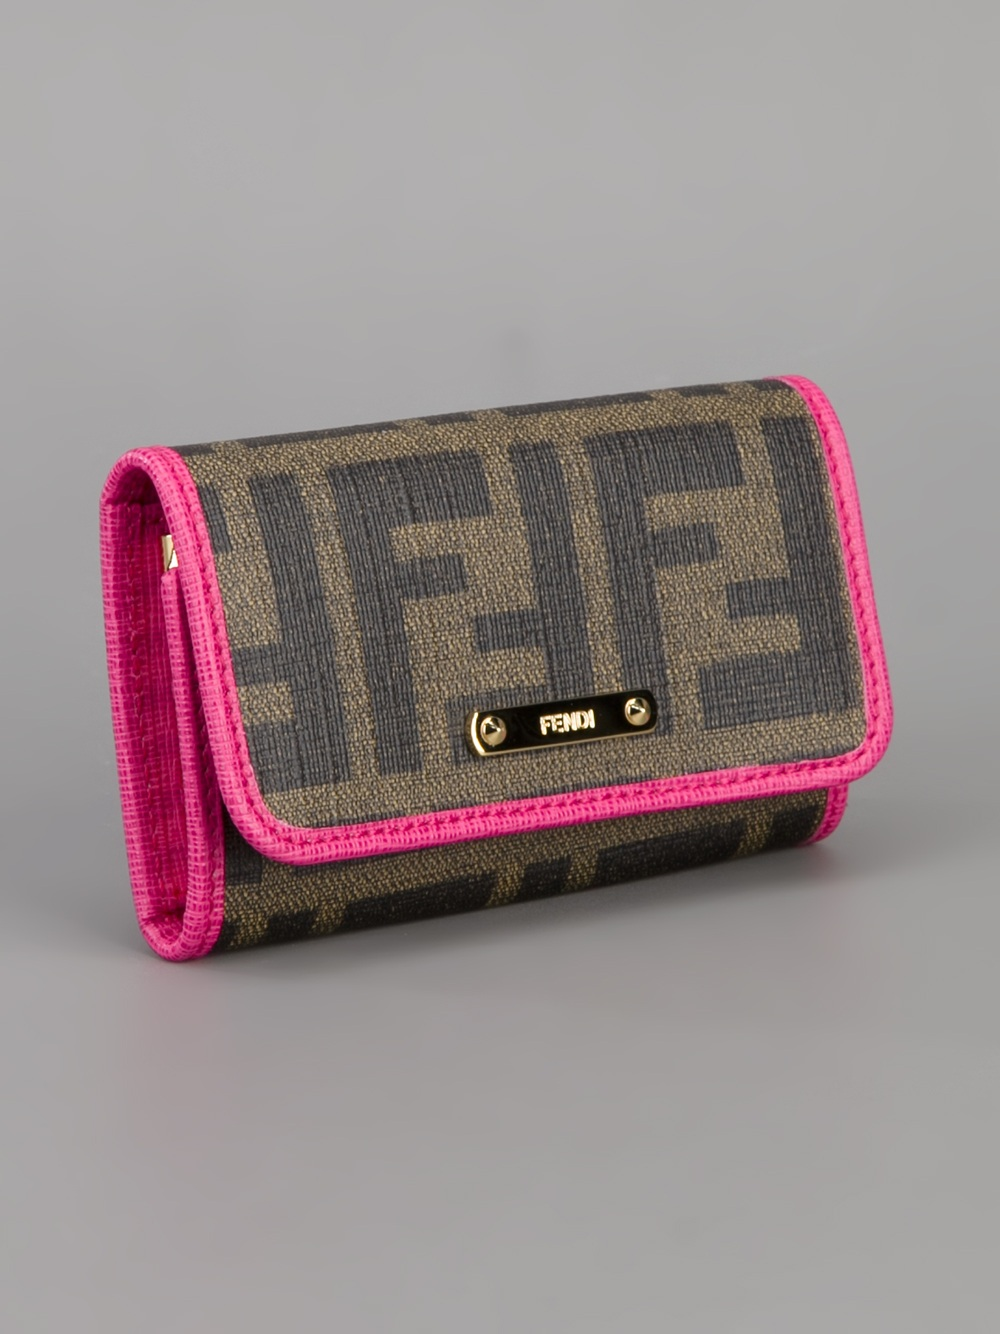 Fendi Monogram Wallet